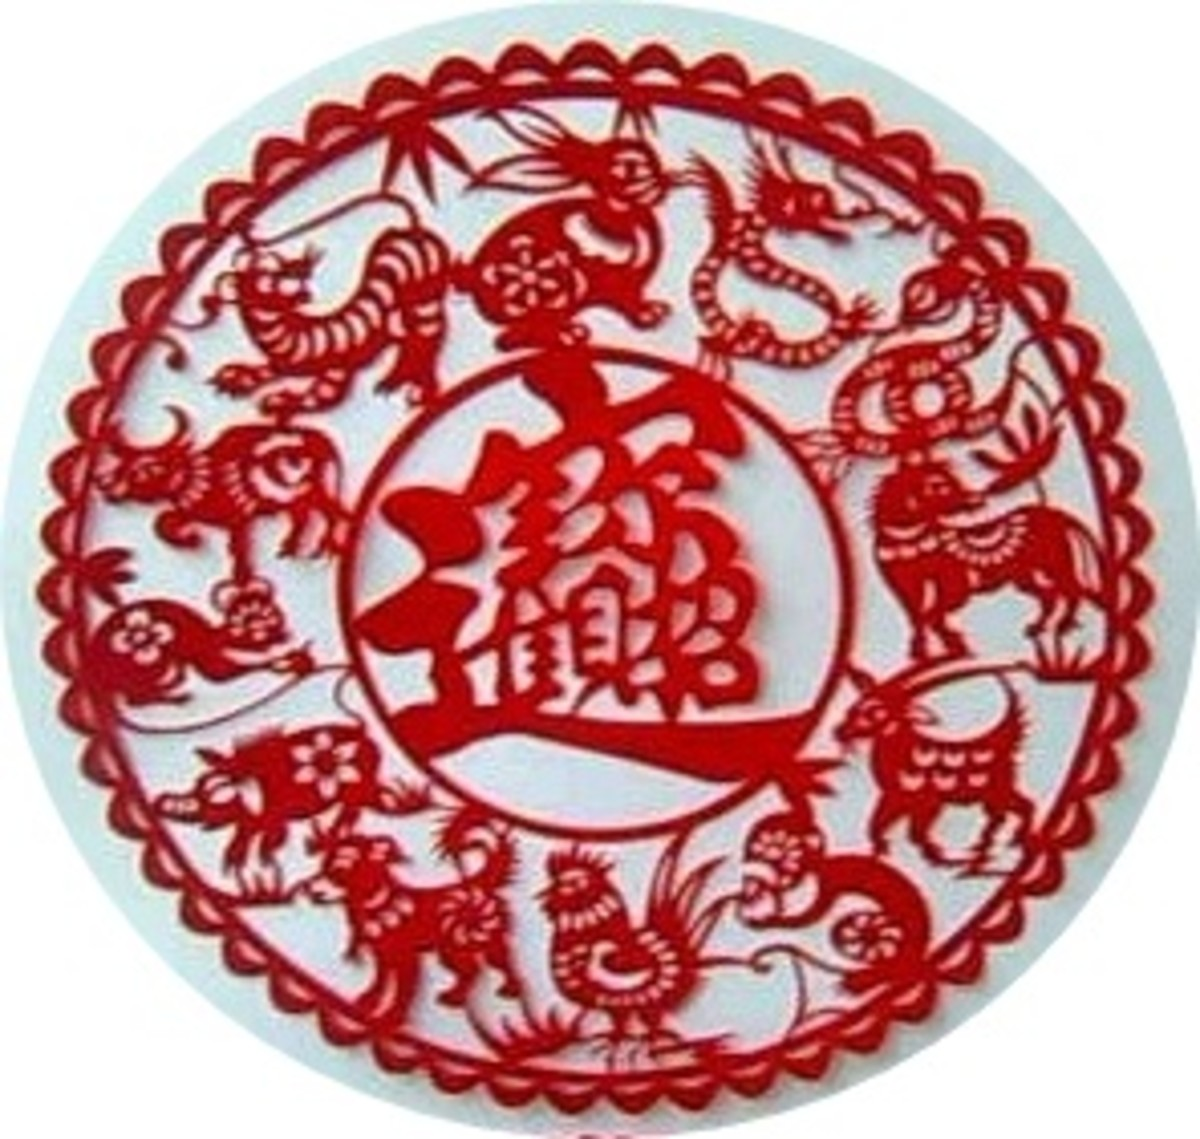 """Chinese wealth symbol 招 财 进 宝 (centre).  The symbol is made up of four characters """"zhao cai jin bao"""", meaning """"attracting wealth and treasures""""."""